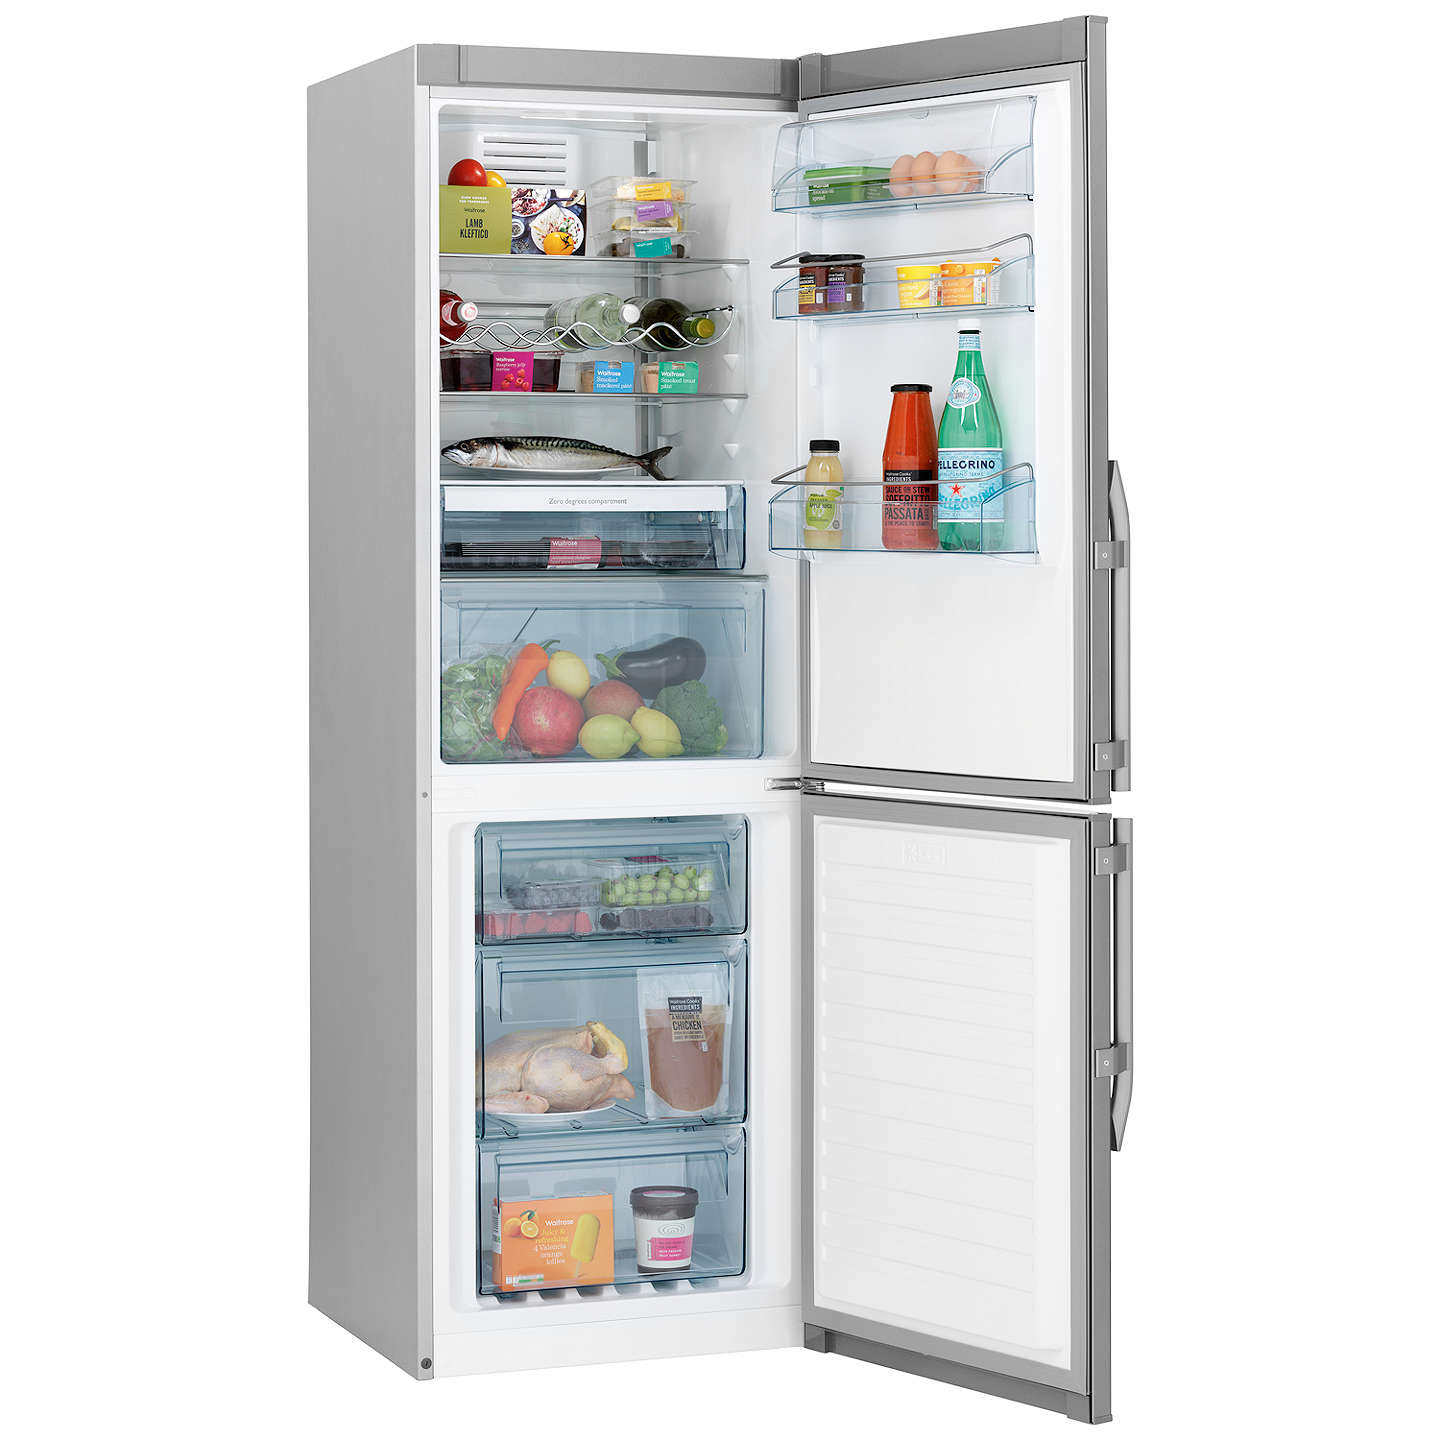 john lewis jlffs1833 freestanding fridge freezer a energy rating rh johnlewis com Zer Ands Portal Zer Name